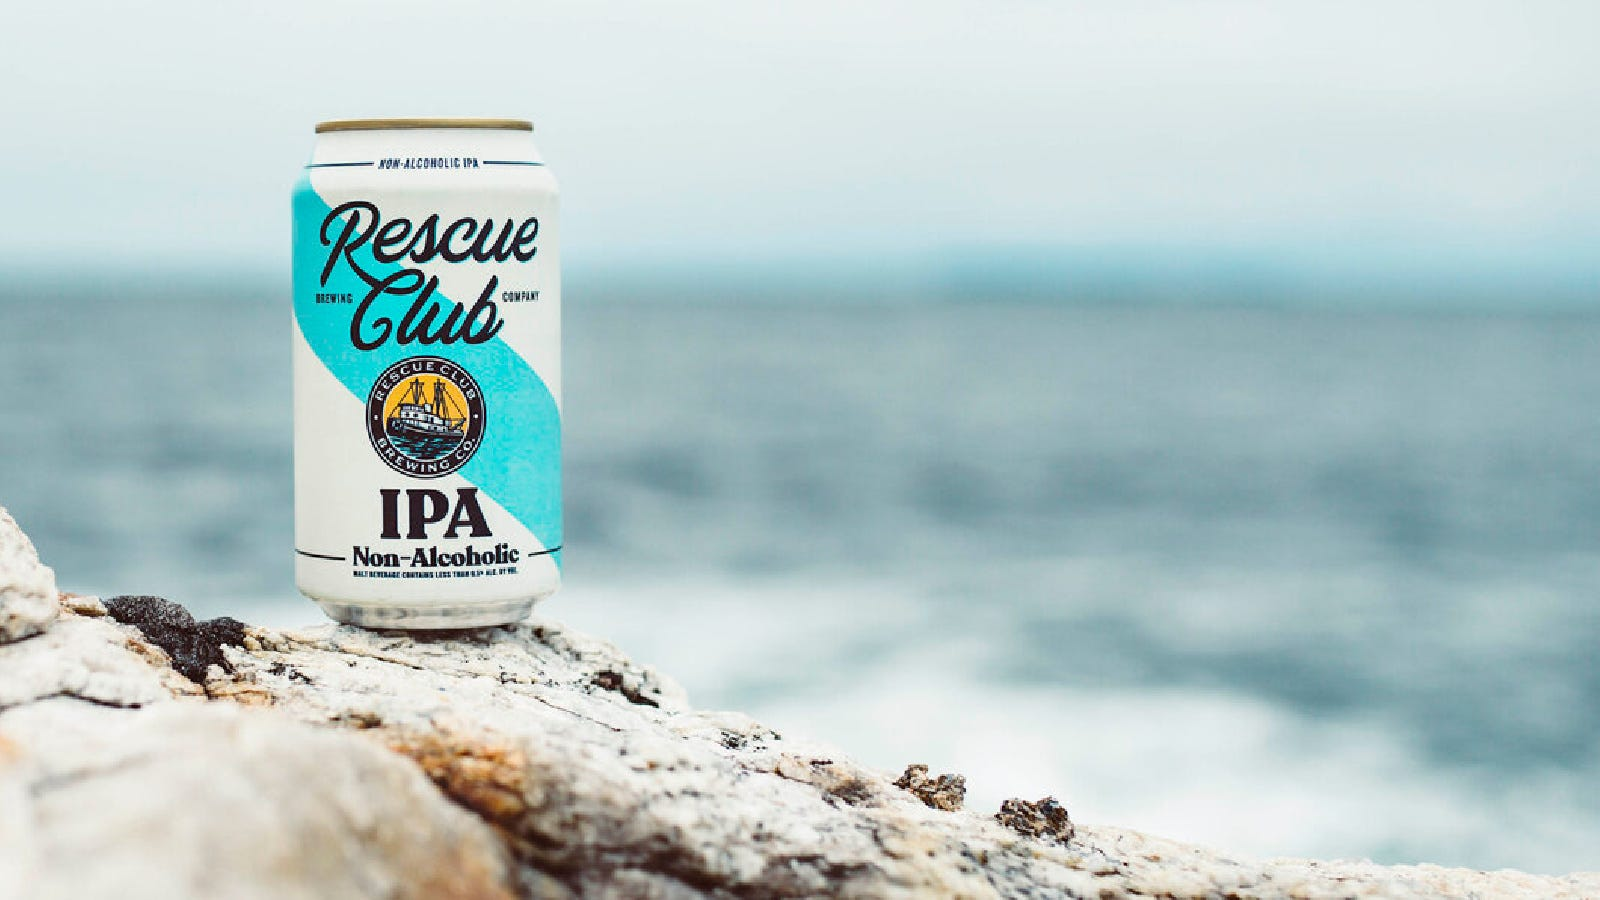 A can of Rescue Club Brewing IPA sitting along the rocks of a beach.